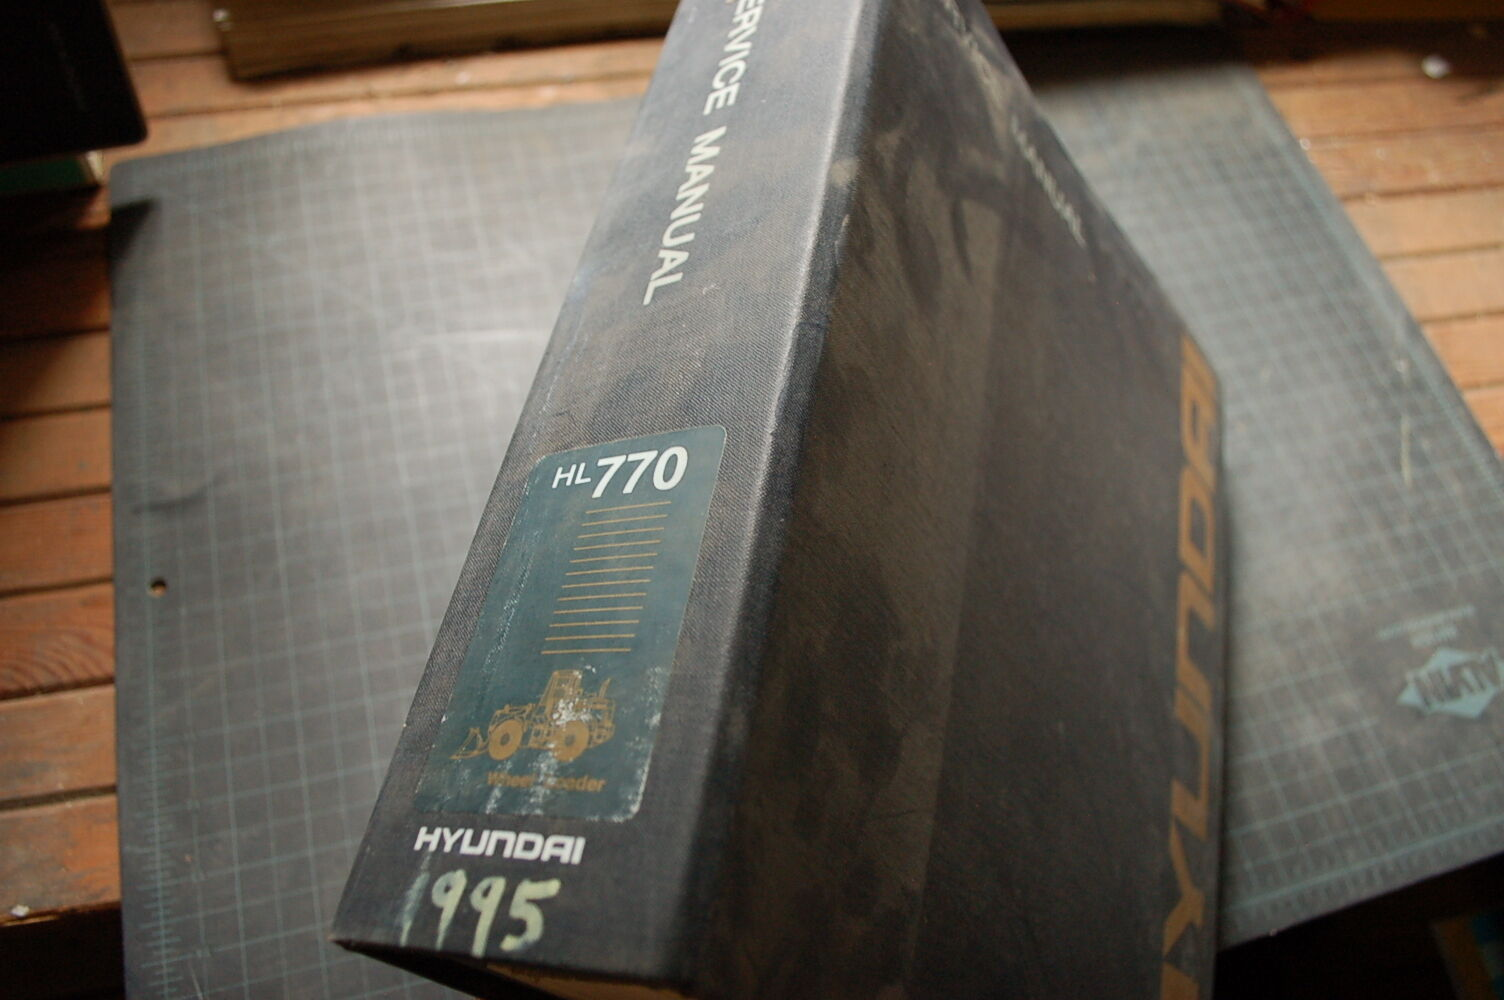 1 of 11Only 1 available HYUNDAI HL770 Front End Wheel Loader Repair Shop Service  Manual book overhaul